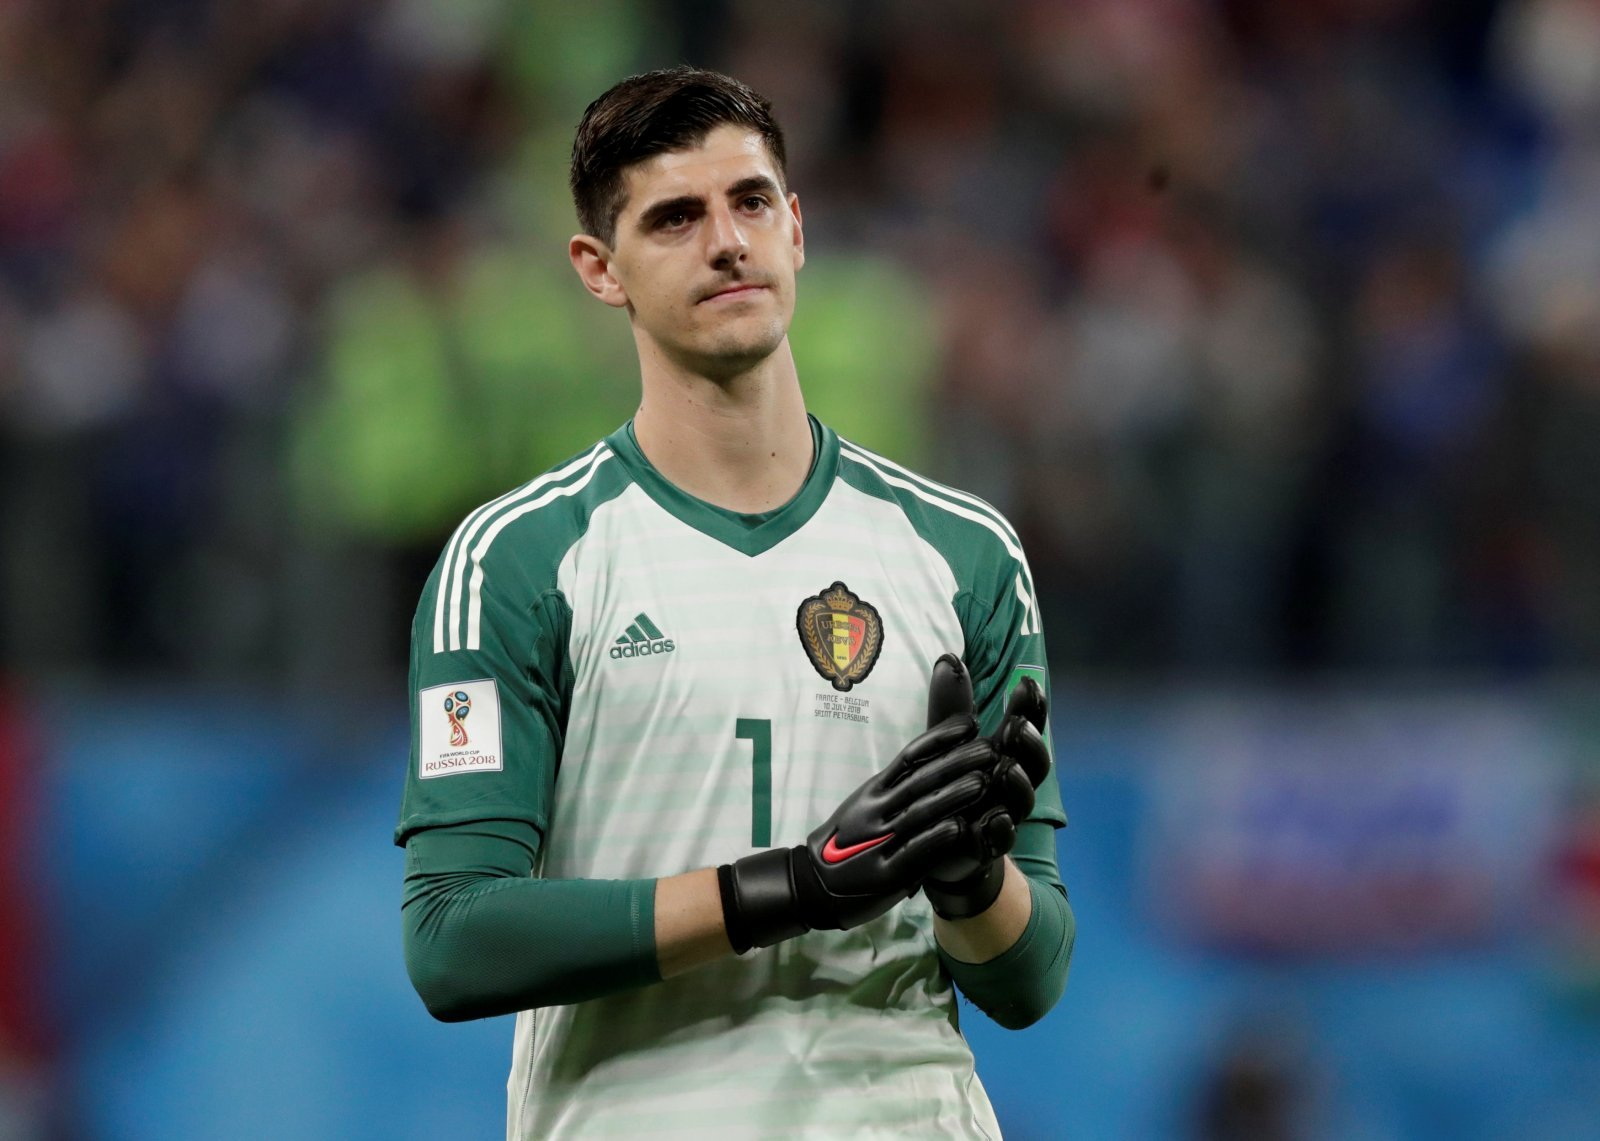 'Keep him at all costs' – Most Chelsea fans would be fuming if this World Cup hero was sold